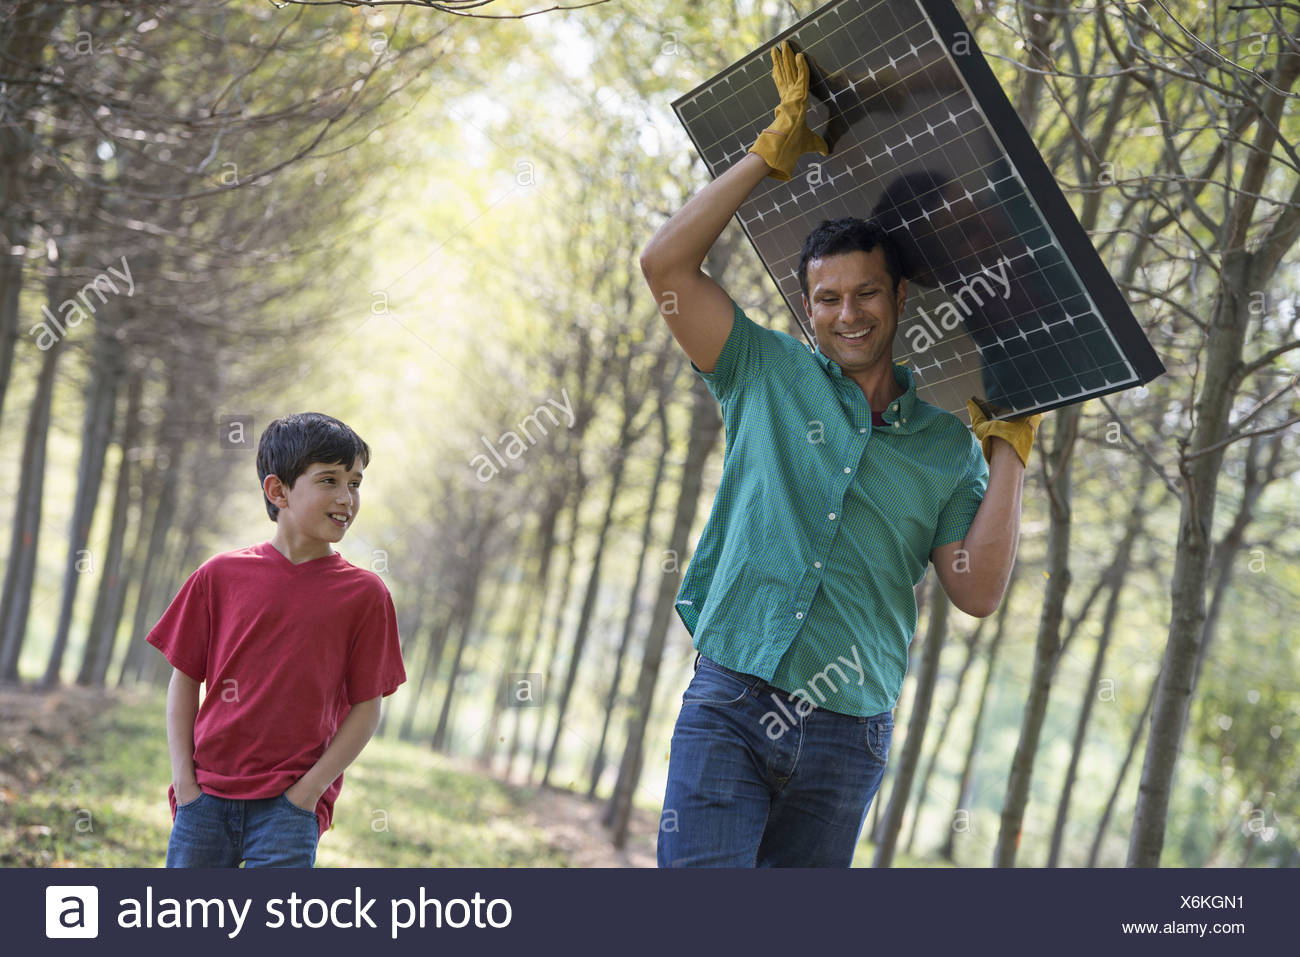 A man carrying a solar panel down an avenue of trees accompanied by a child. Stock Photo